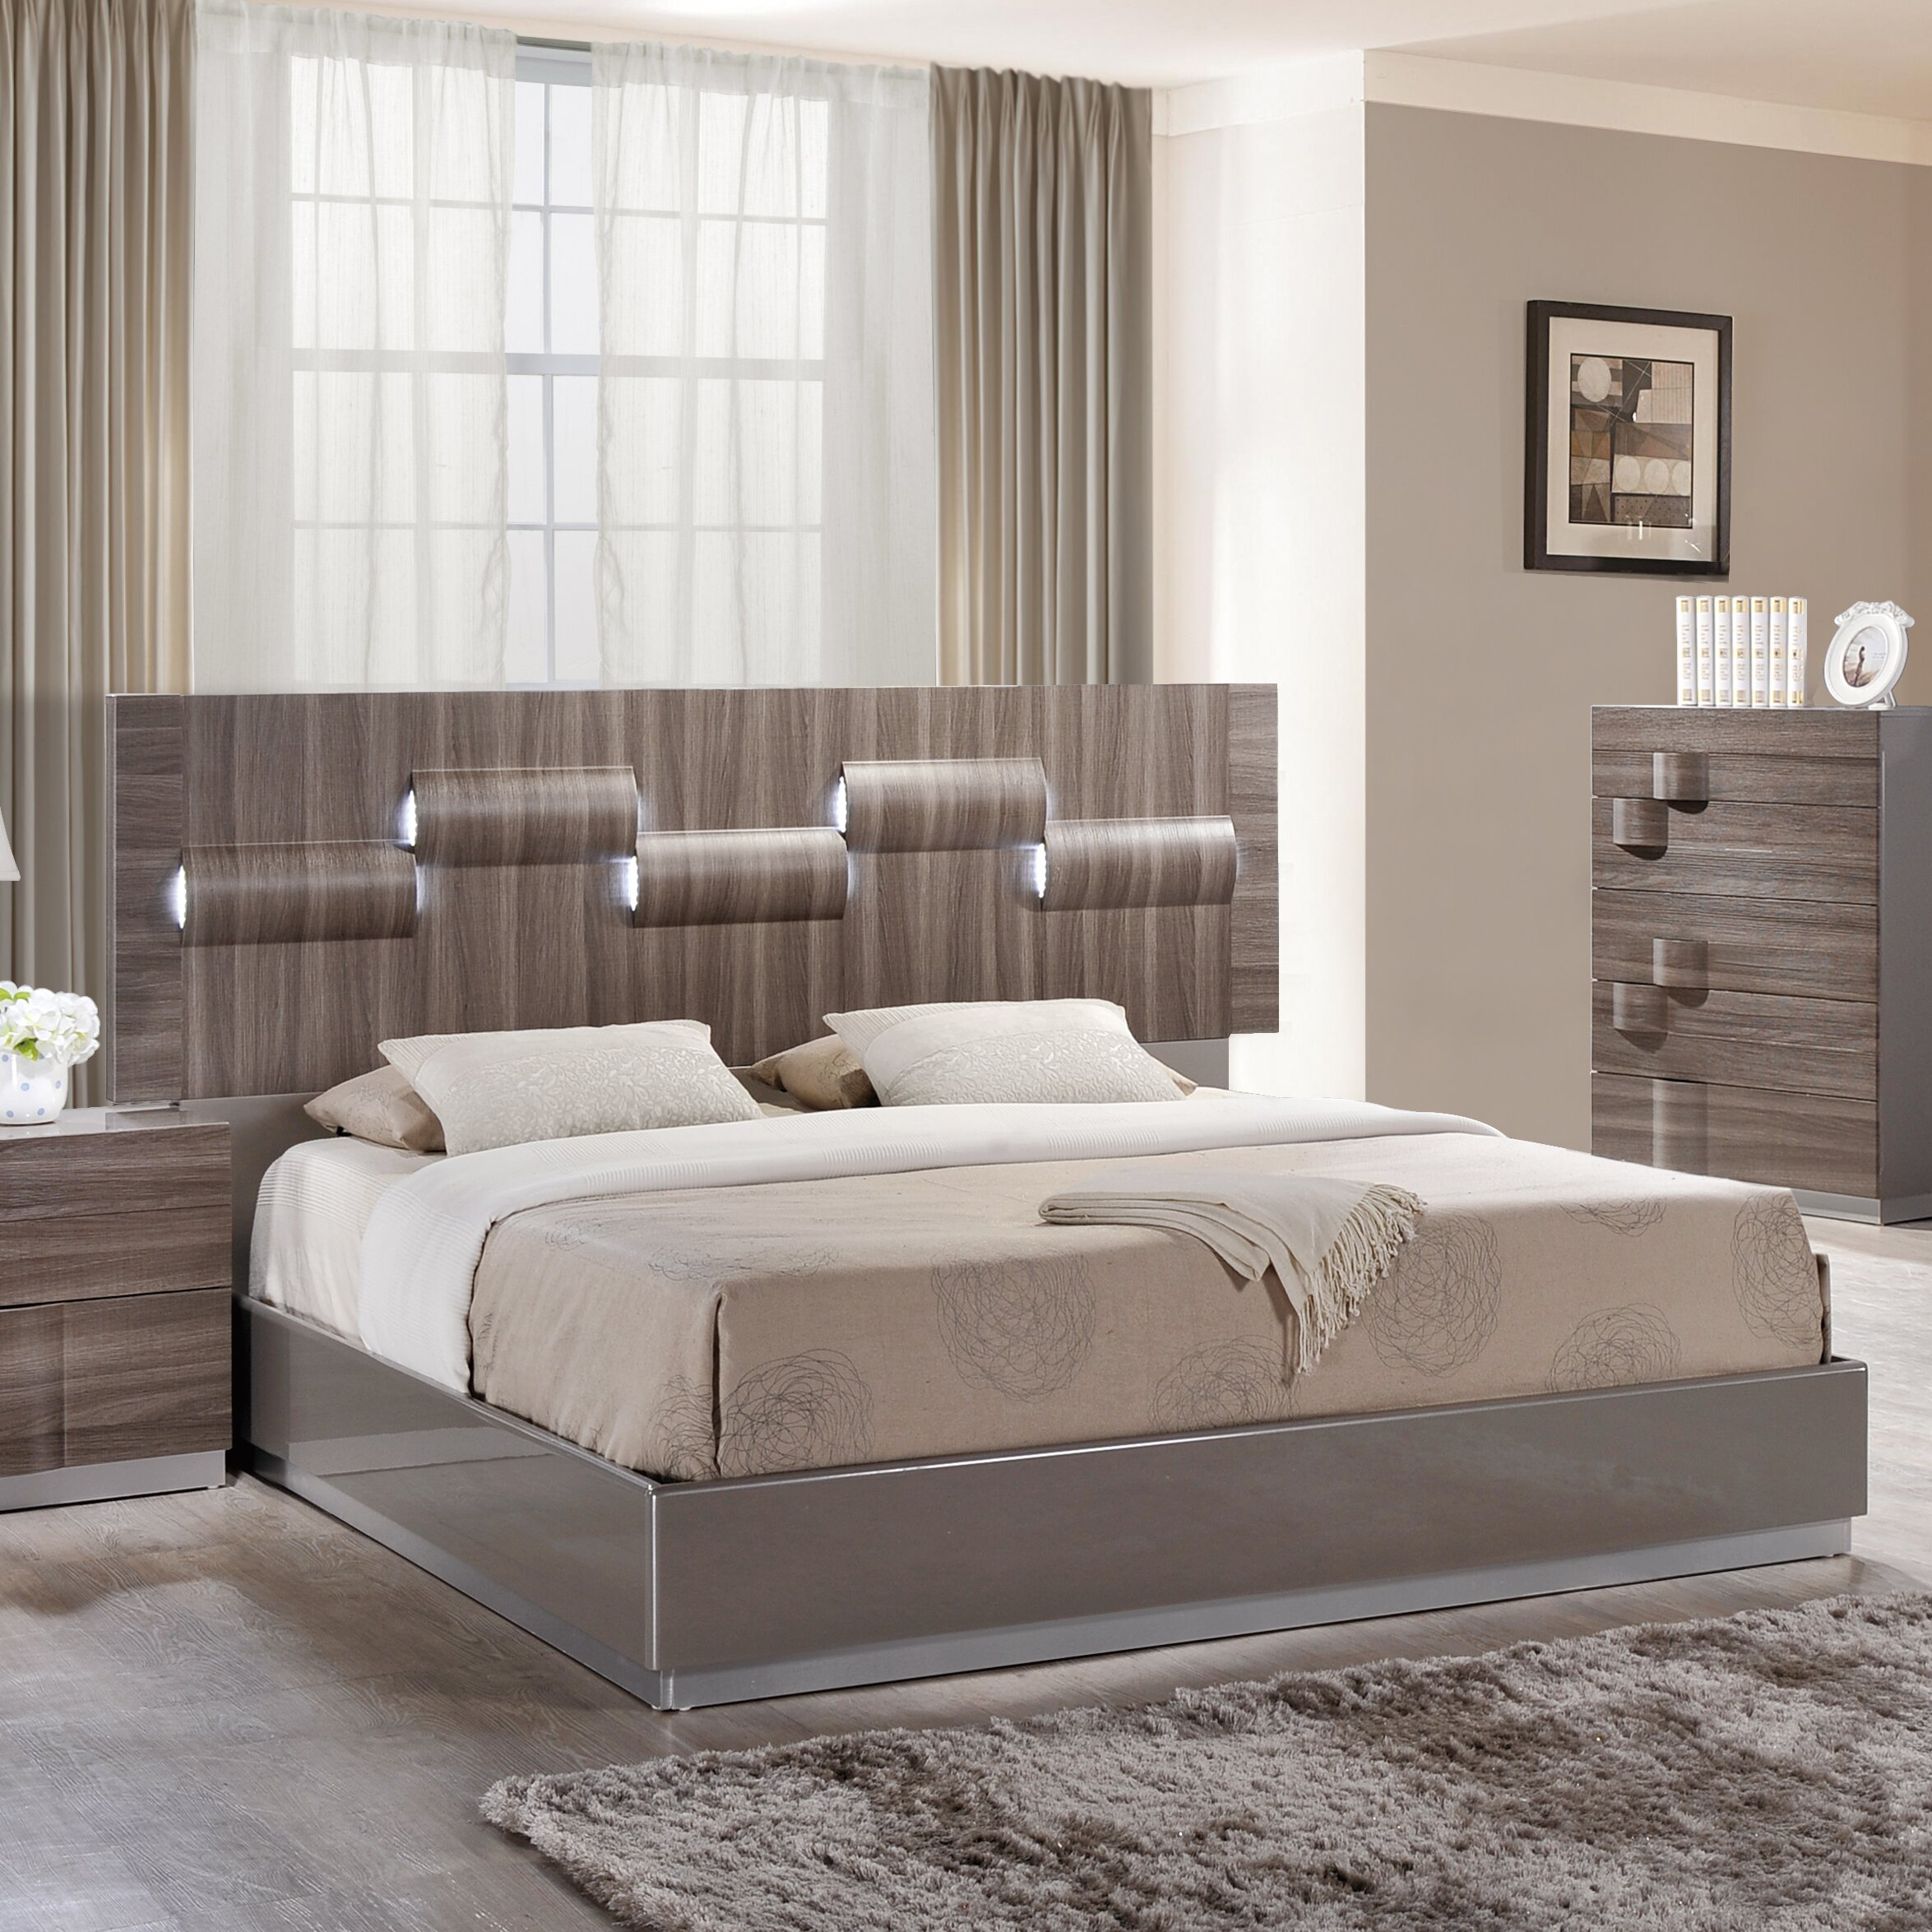 Global furniture usa platform bed wayfair for Bedroom furniture usa